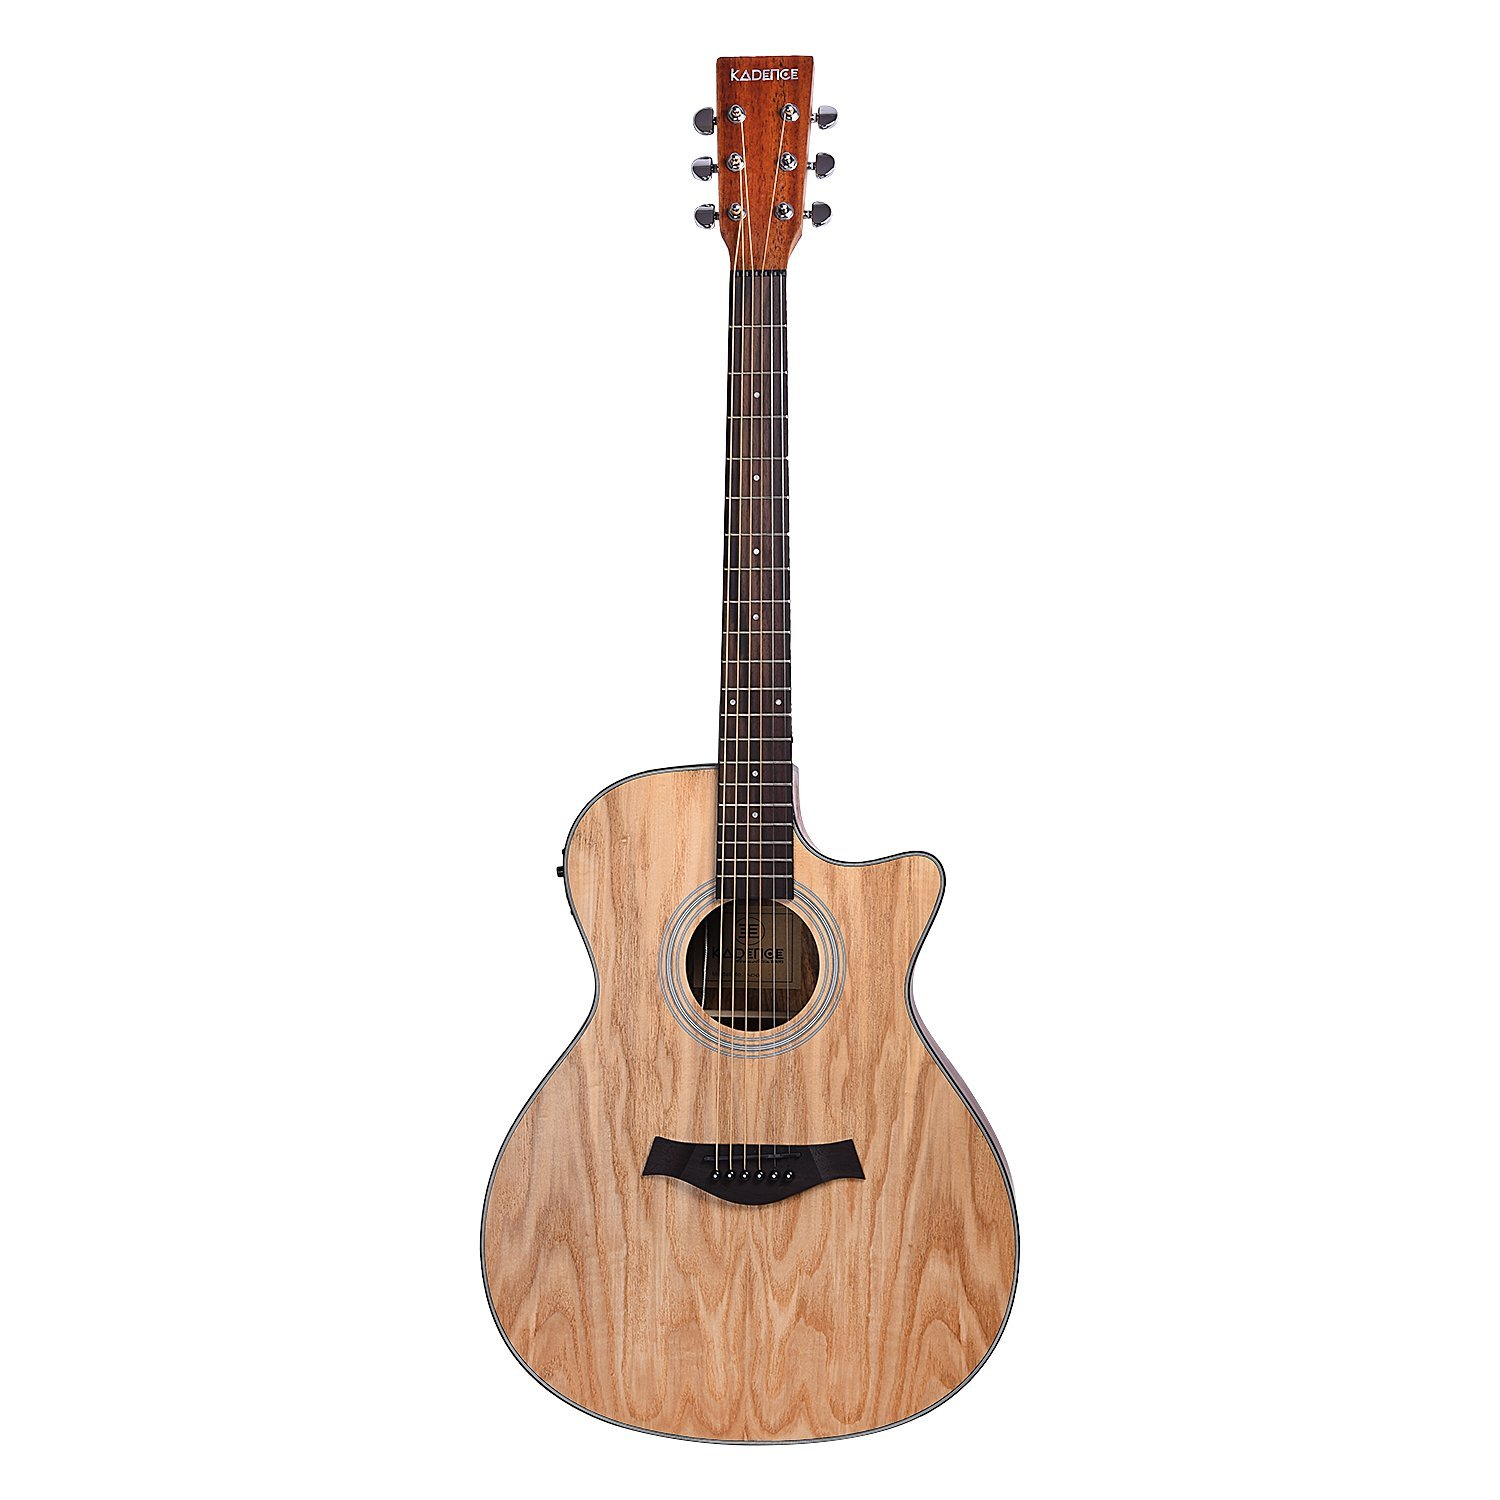 Best Acoustic Guitar Under 10000 Rs. - Learn Guitar Chords